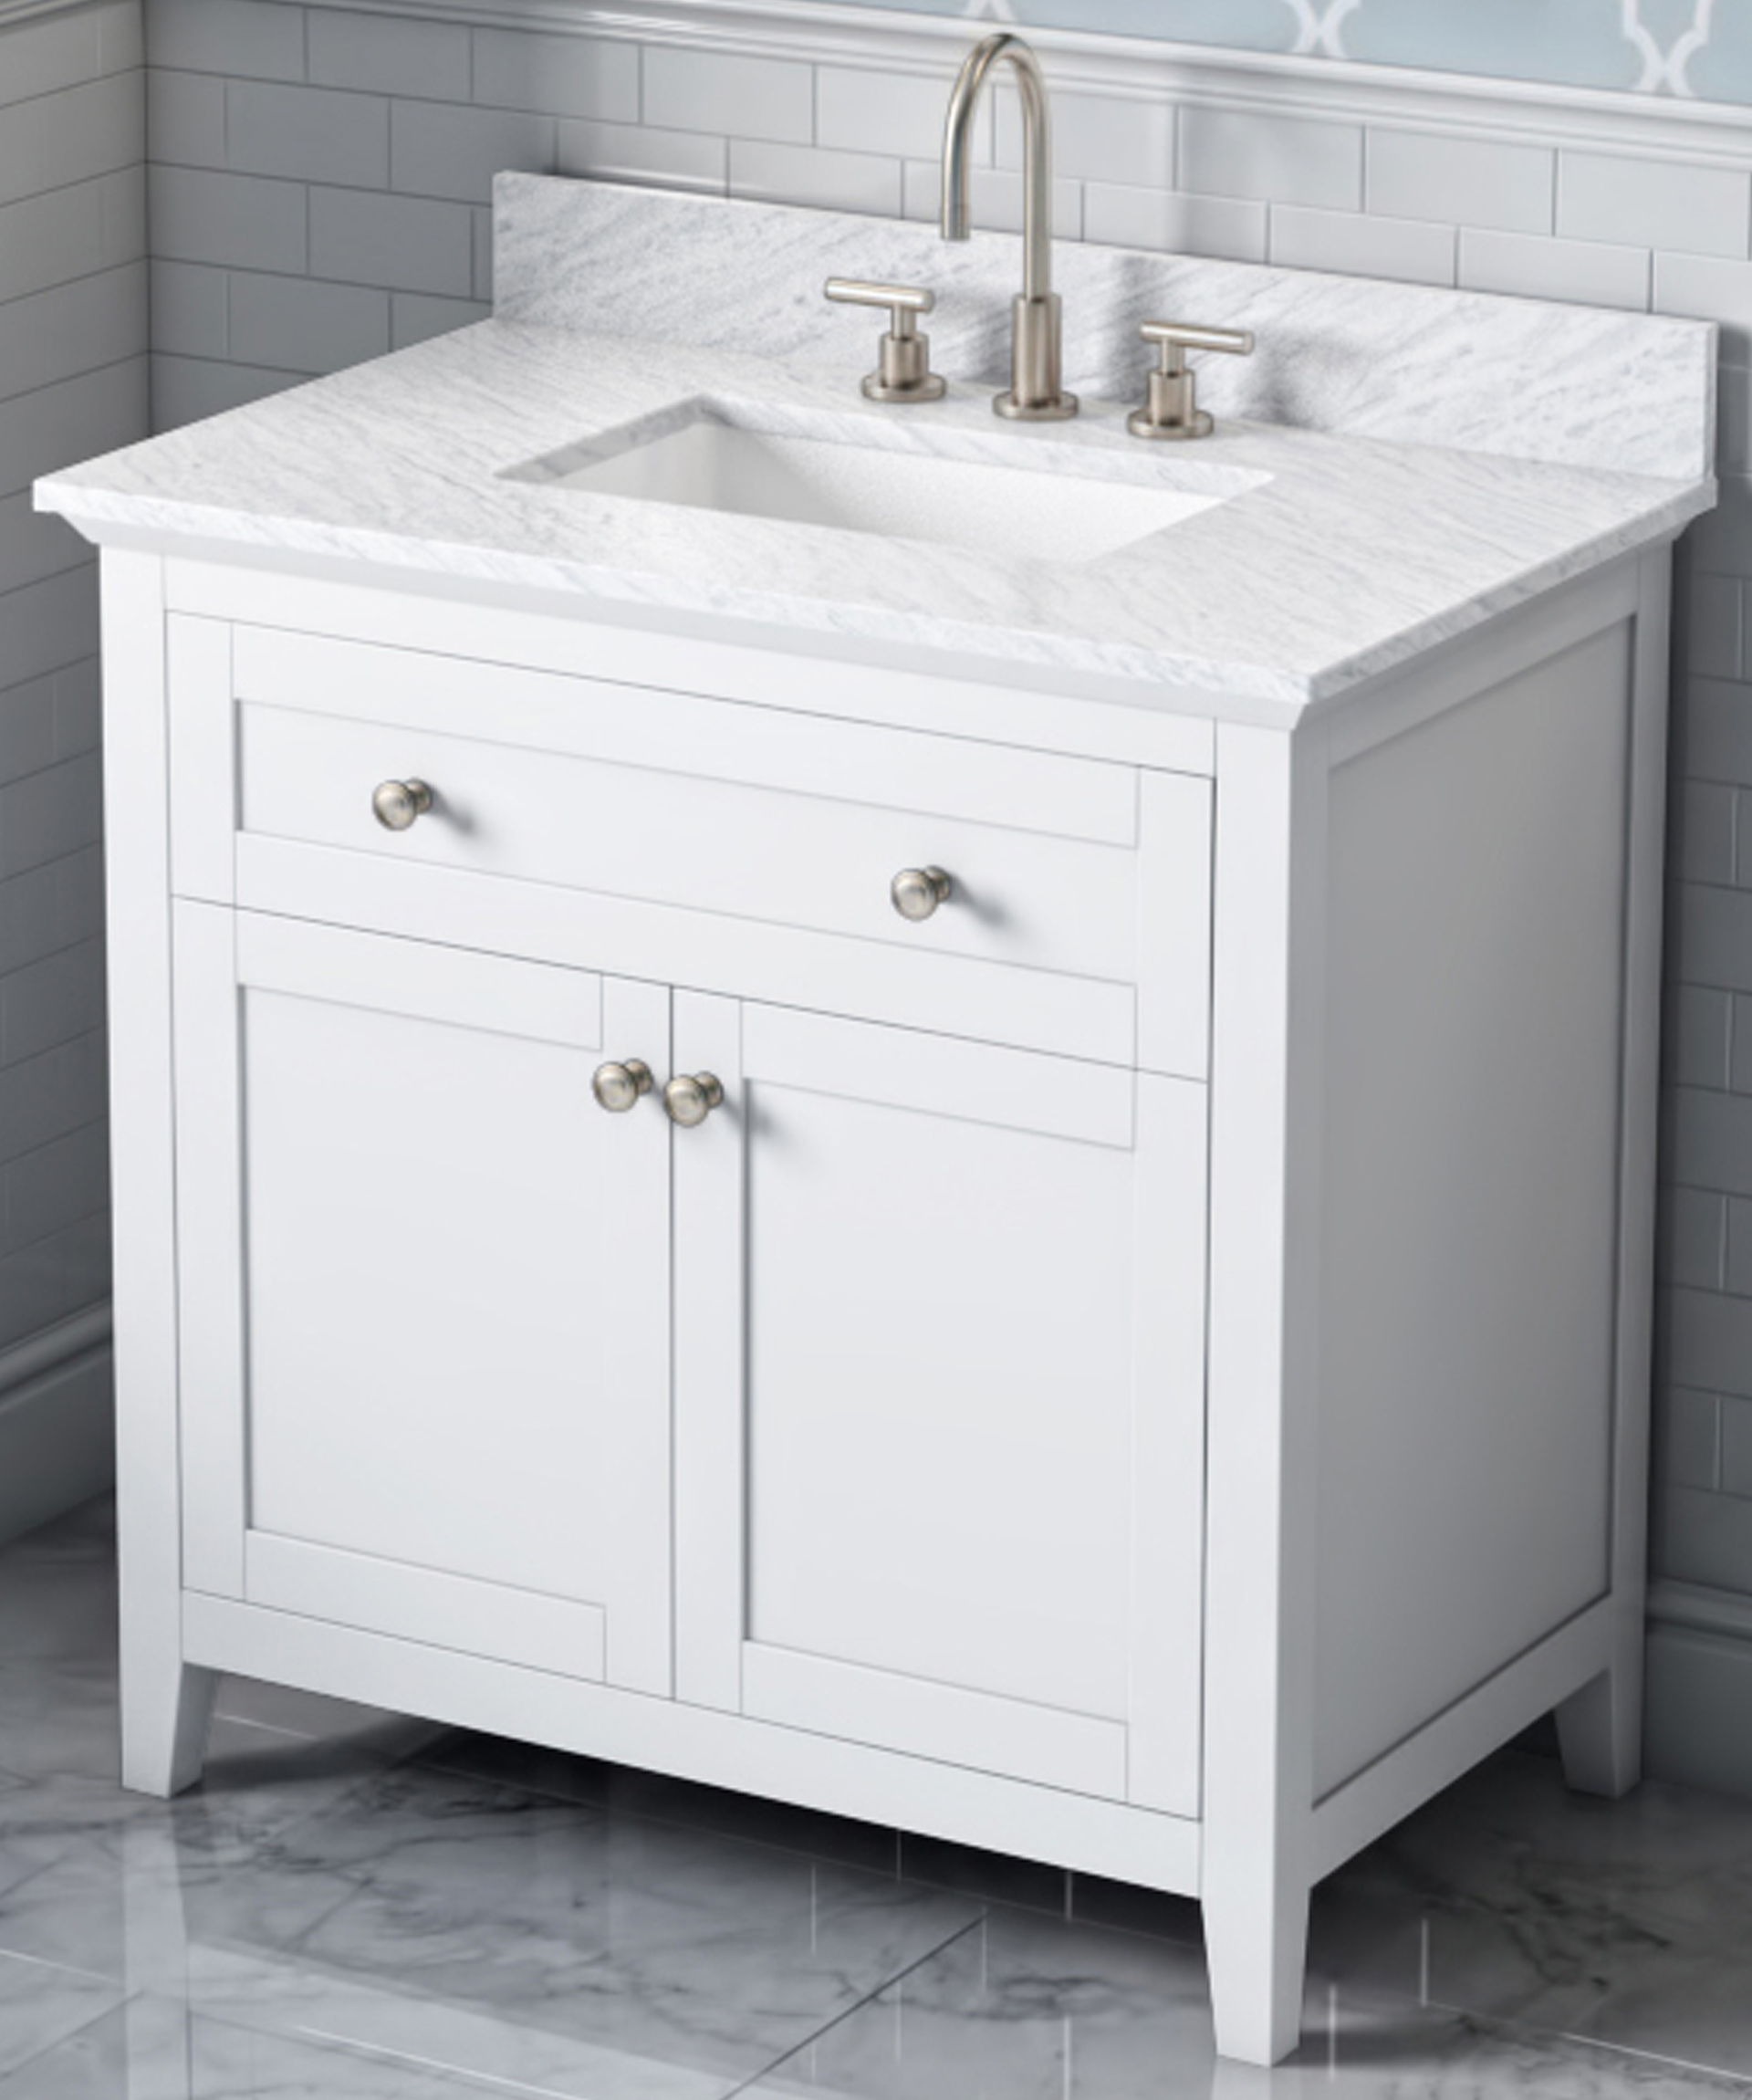 "30"" Single Sink Bathroom Vanity White Finish, White Carrara Marble Vanity Top, Undermount Rectangle Bowl"